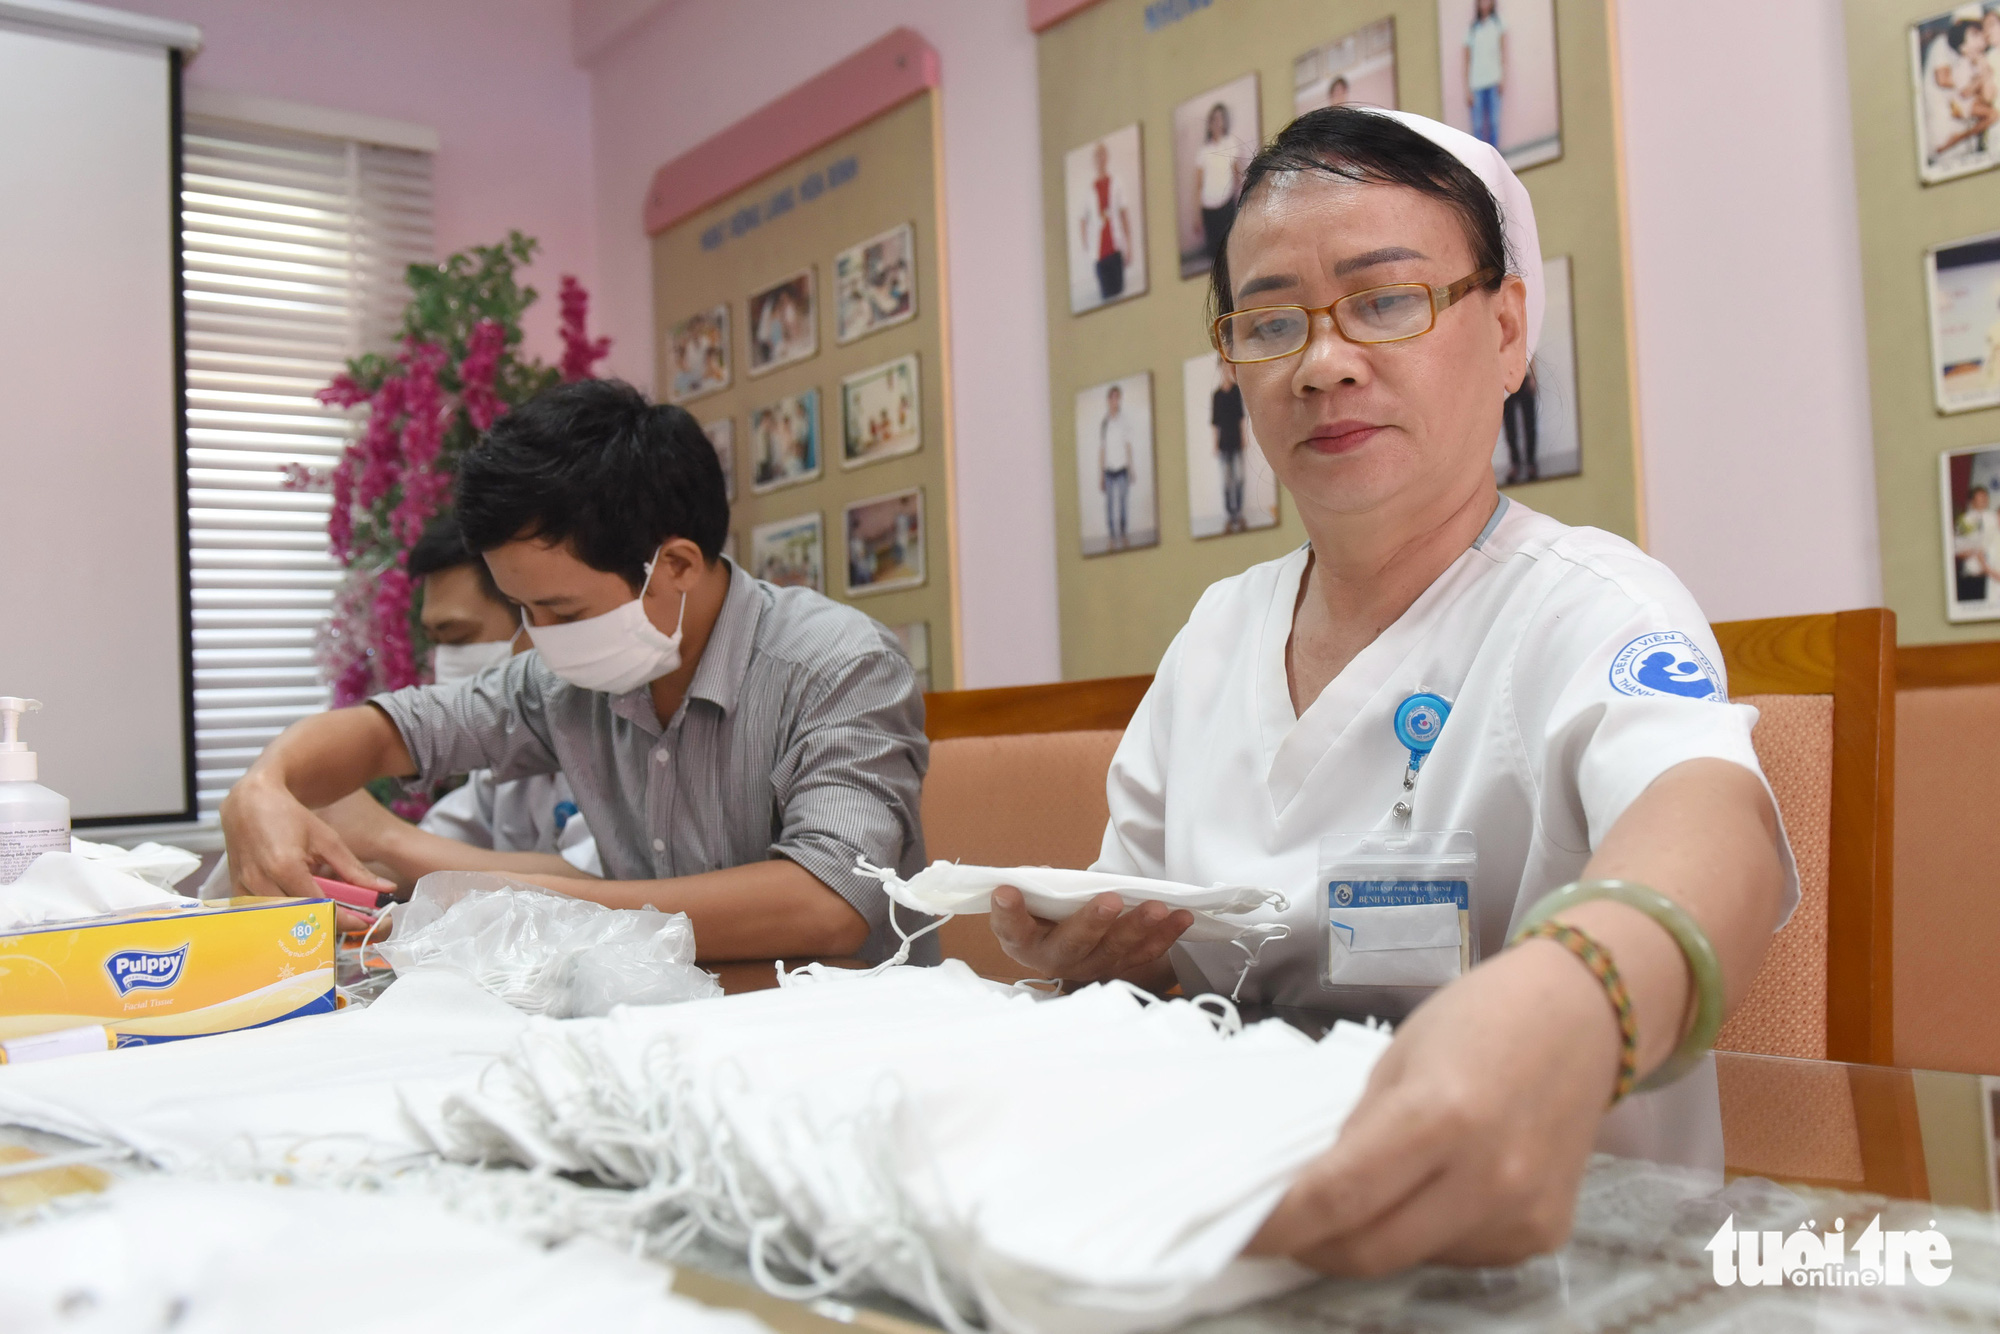 Doan Thi Thanh, deputy head of the rehabilitation ward at Tu Du Maternity Hospital in Ho Chi Minh City, organizes stacks of face masks made by her colleagues, February 13, 2020. Photo: Duyen Phan / Tuoi Tre